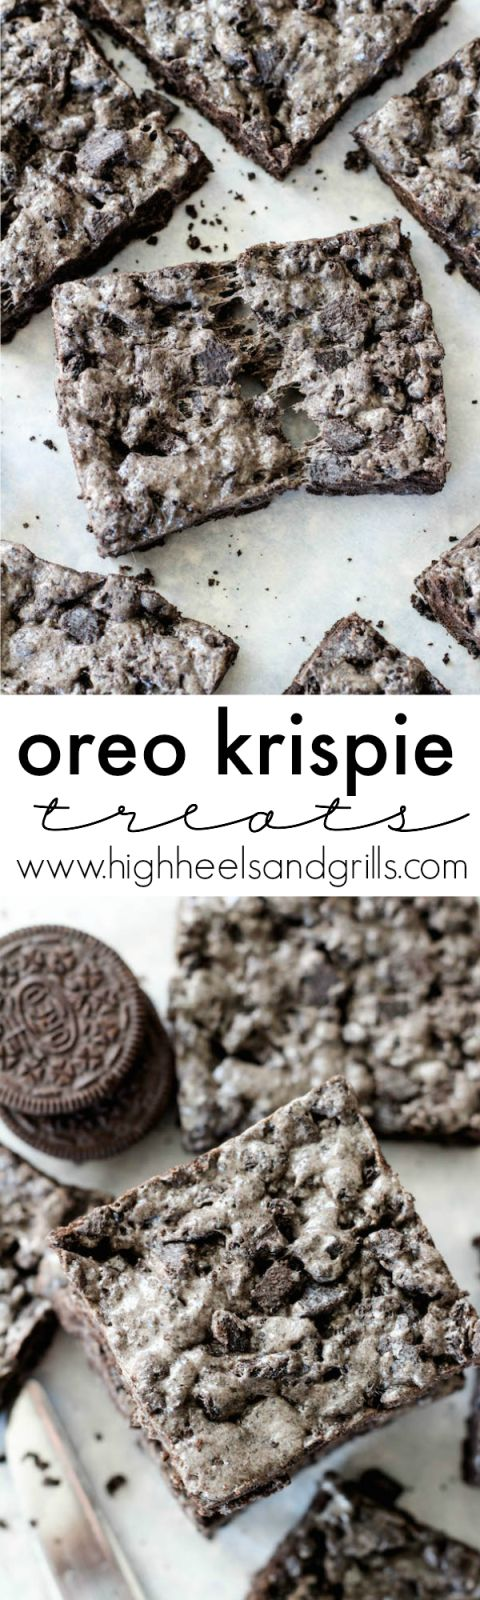 Oreo Krispie Treats - 1 10oz bag of large marshmallows, 1 package of regular Oreos and 4tbs butter